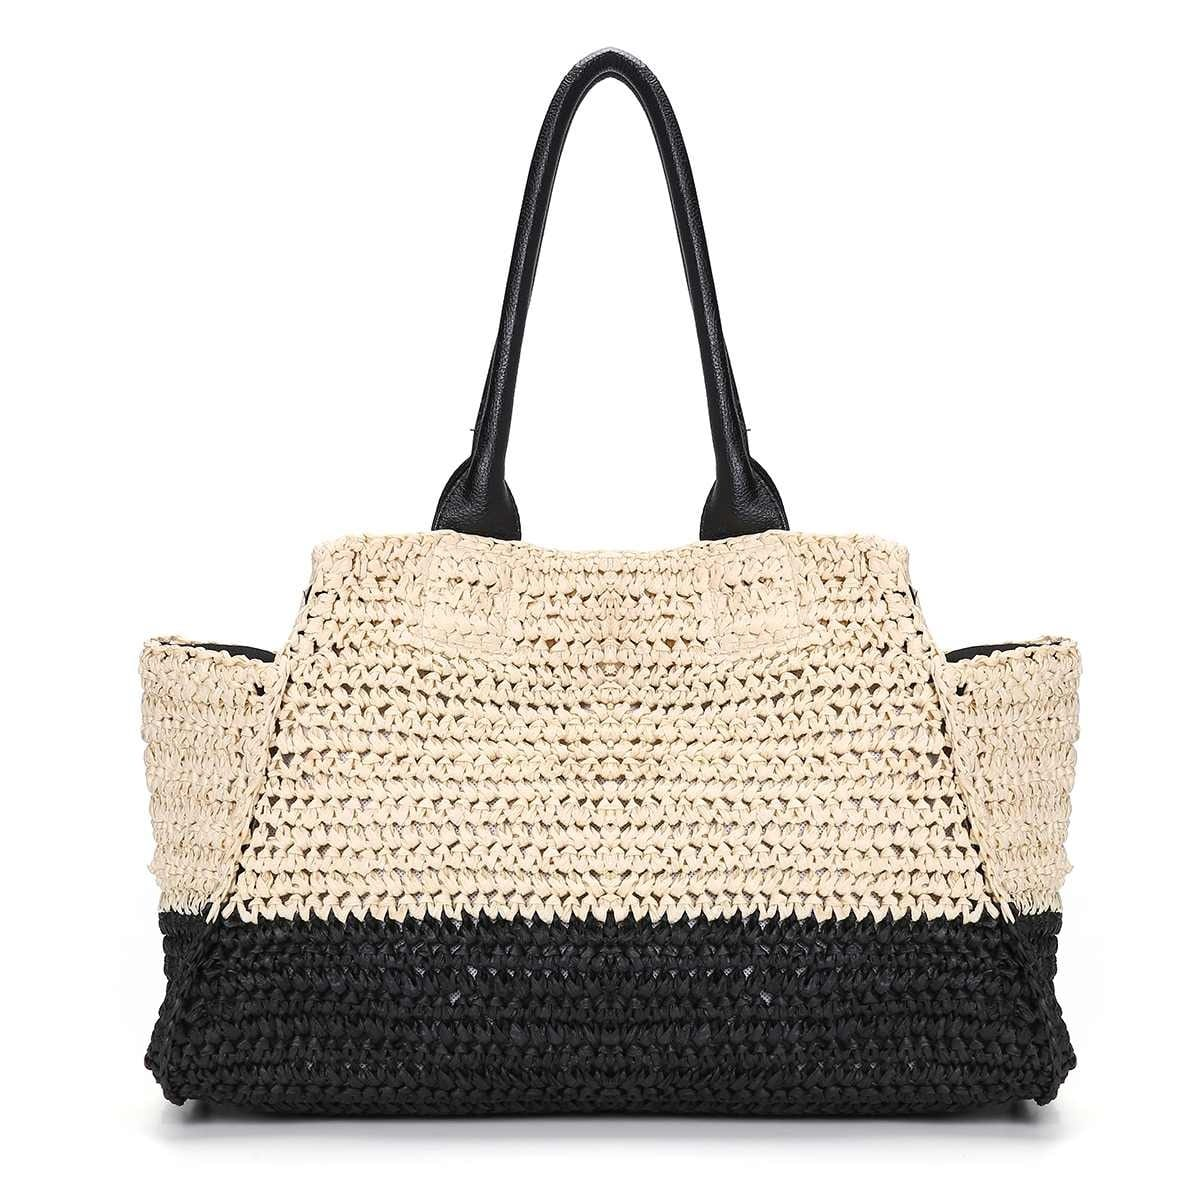 Woven handbag and clutches